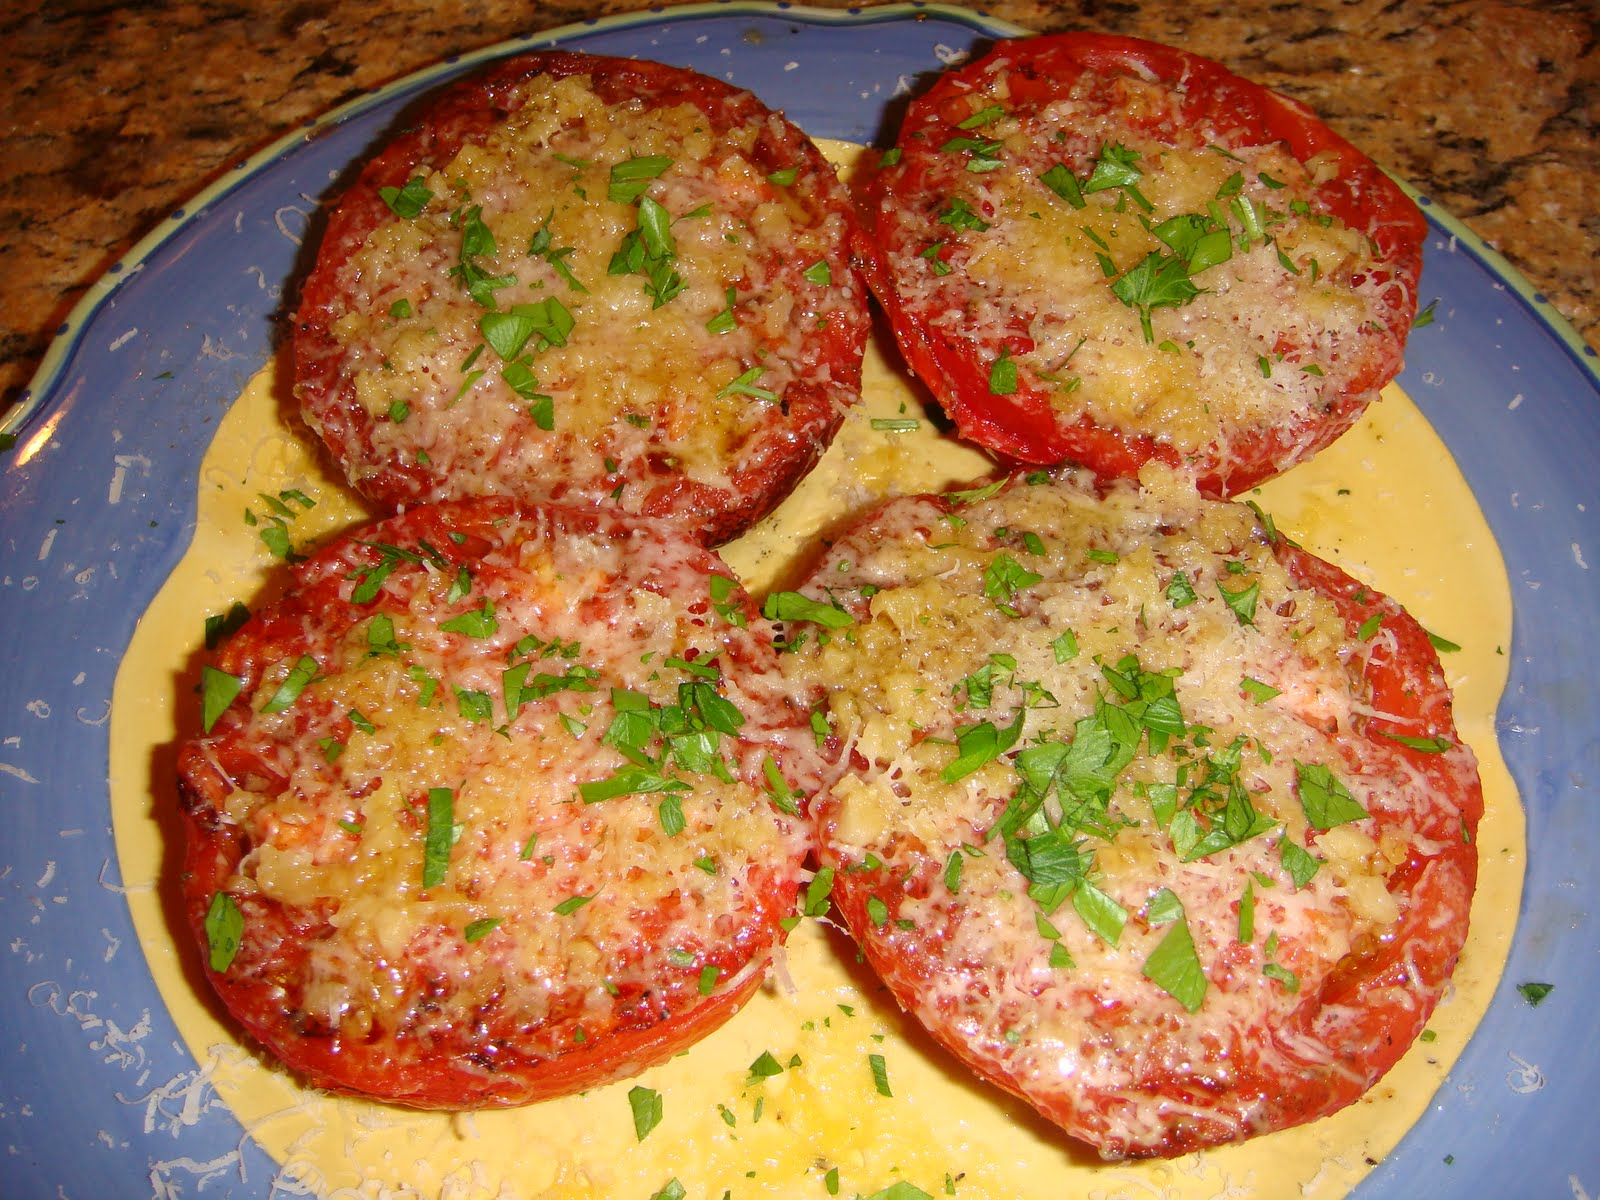 Grilled Tomatoes with Garlic & Parmesan Cheese